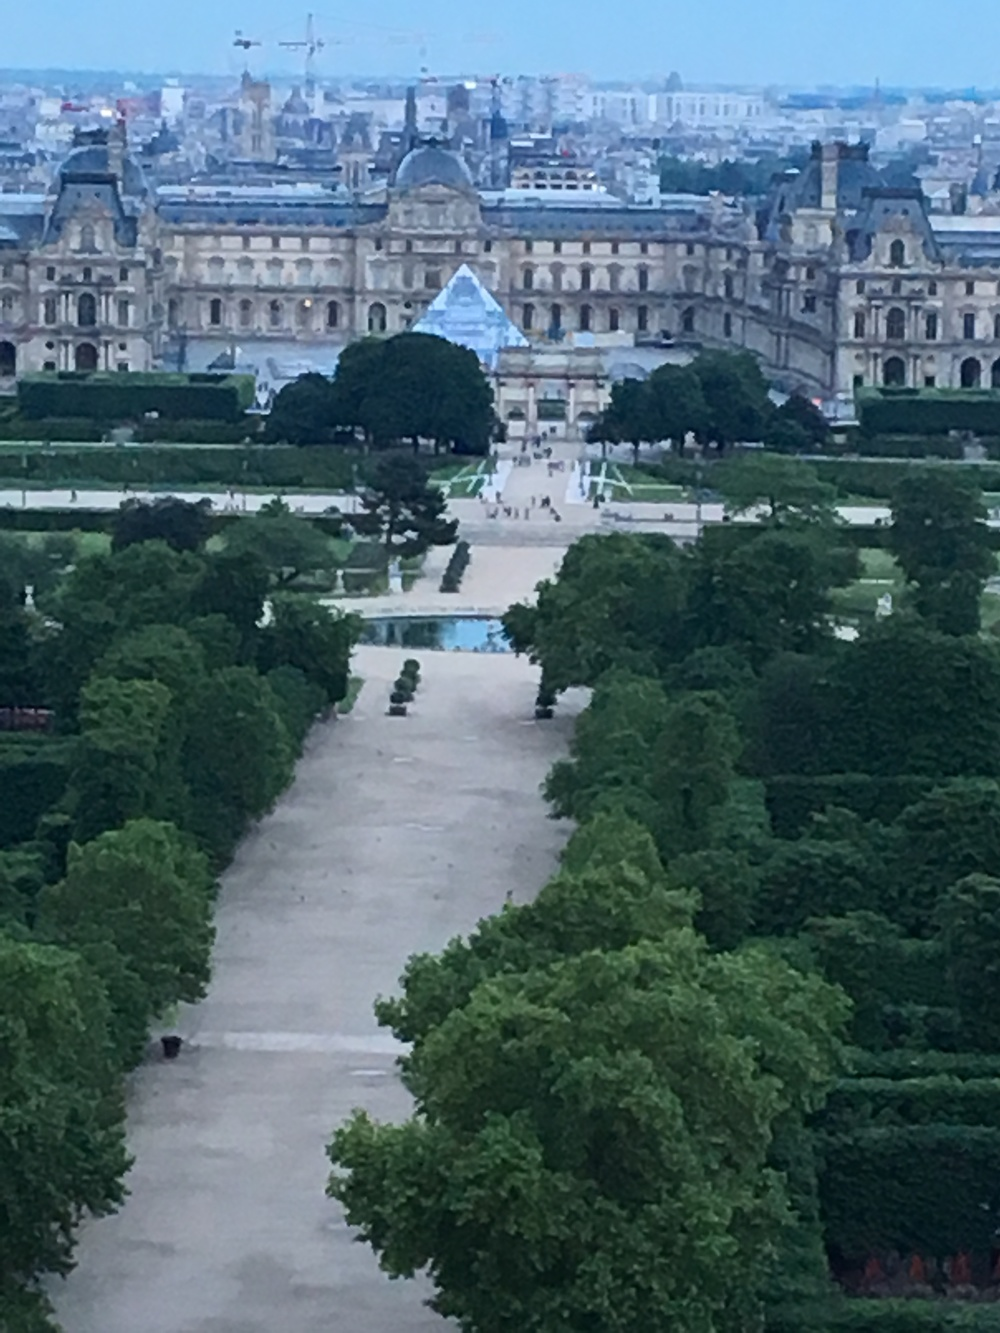 Palais Royal (Louvre) from the Ferris Wheel; at this time of night with the distance and low light, it almost looks like an impressionist painting!